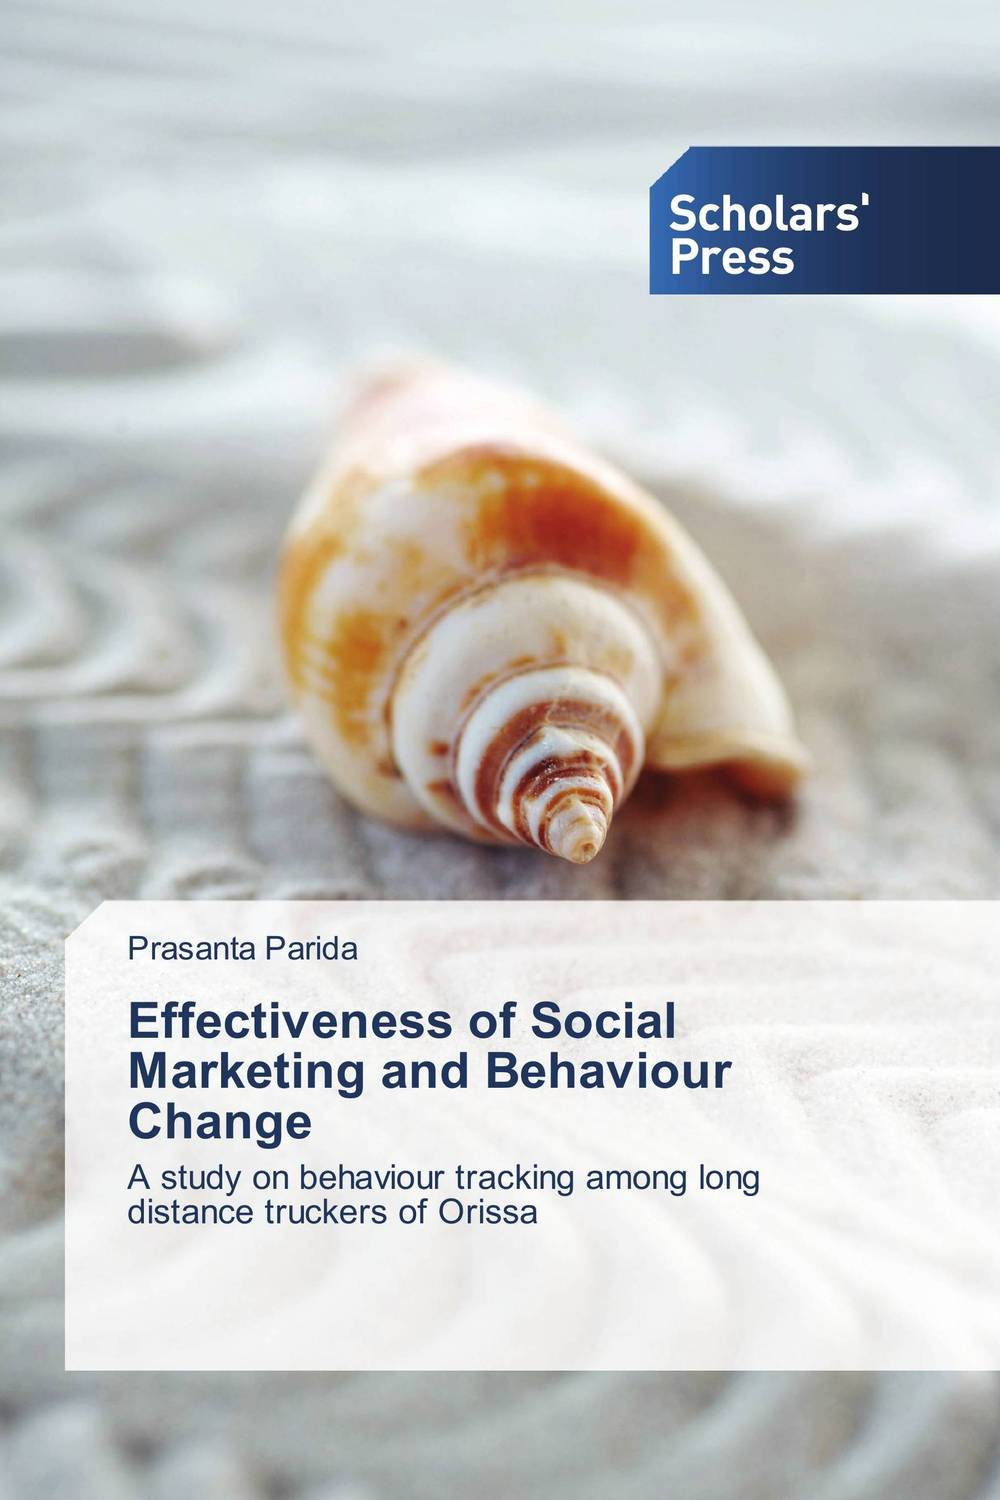 Effectiveness of Social Marketing and Behaviour Change